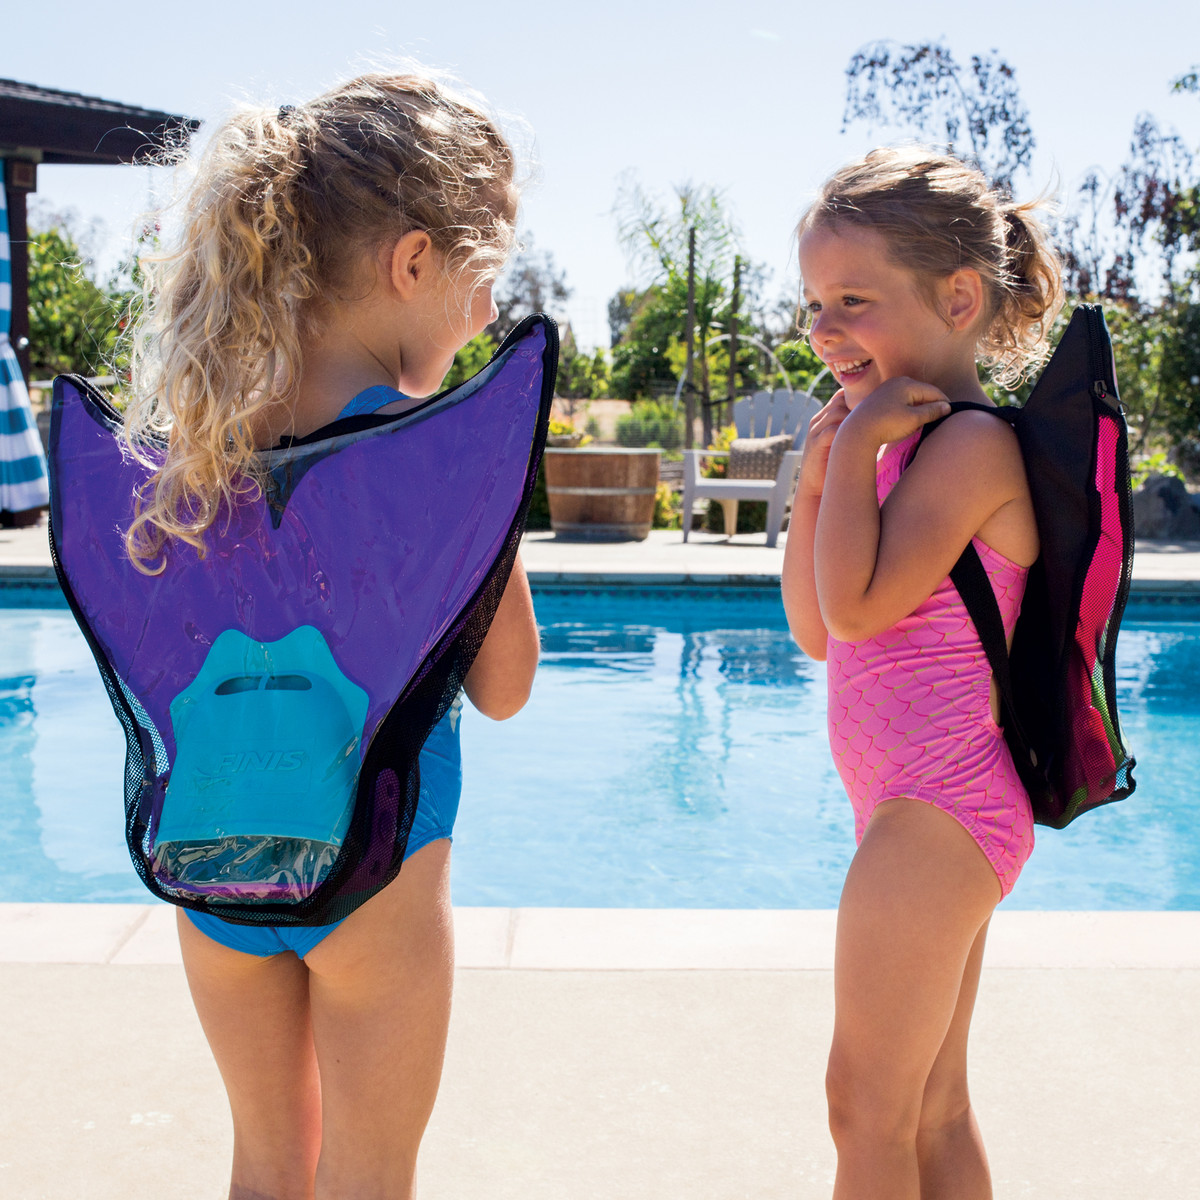 The Mermaid Fin Instantly Transforms Any Swimmer Into A Mermaid